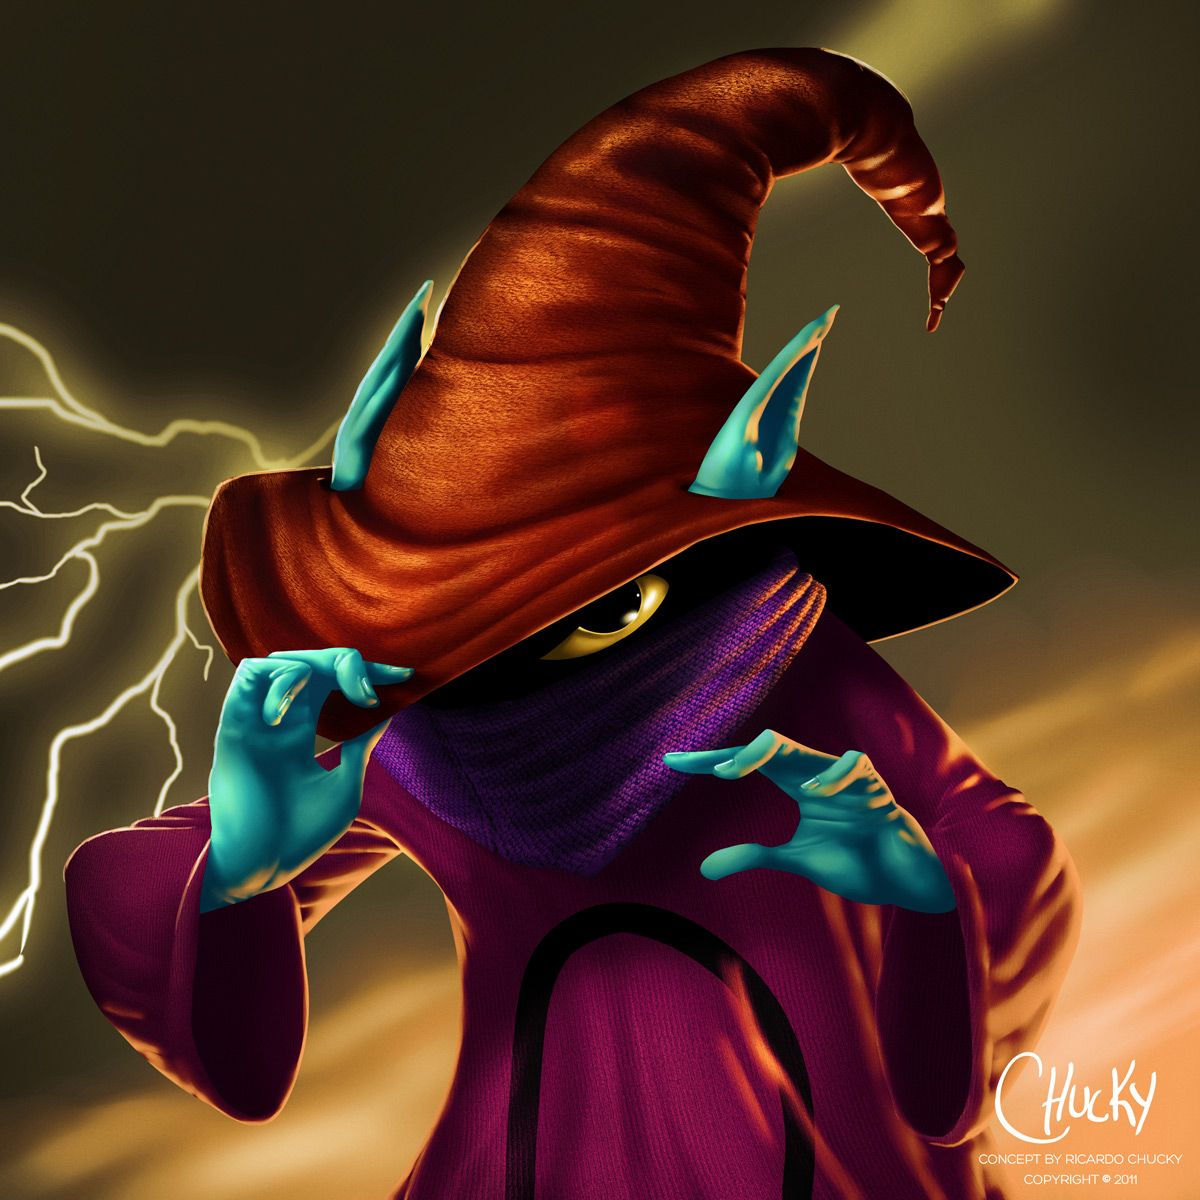 Orko from He Man and the Masters of the Universe